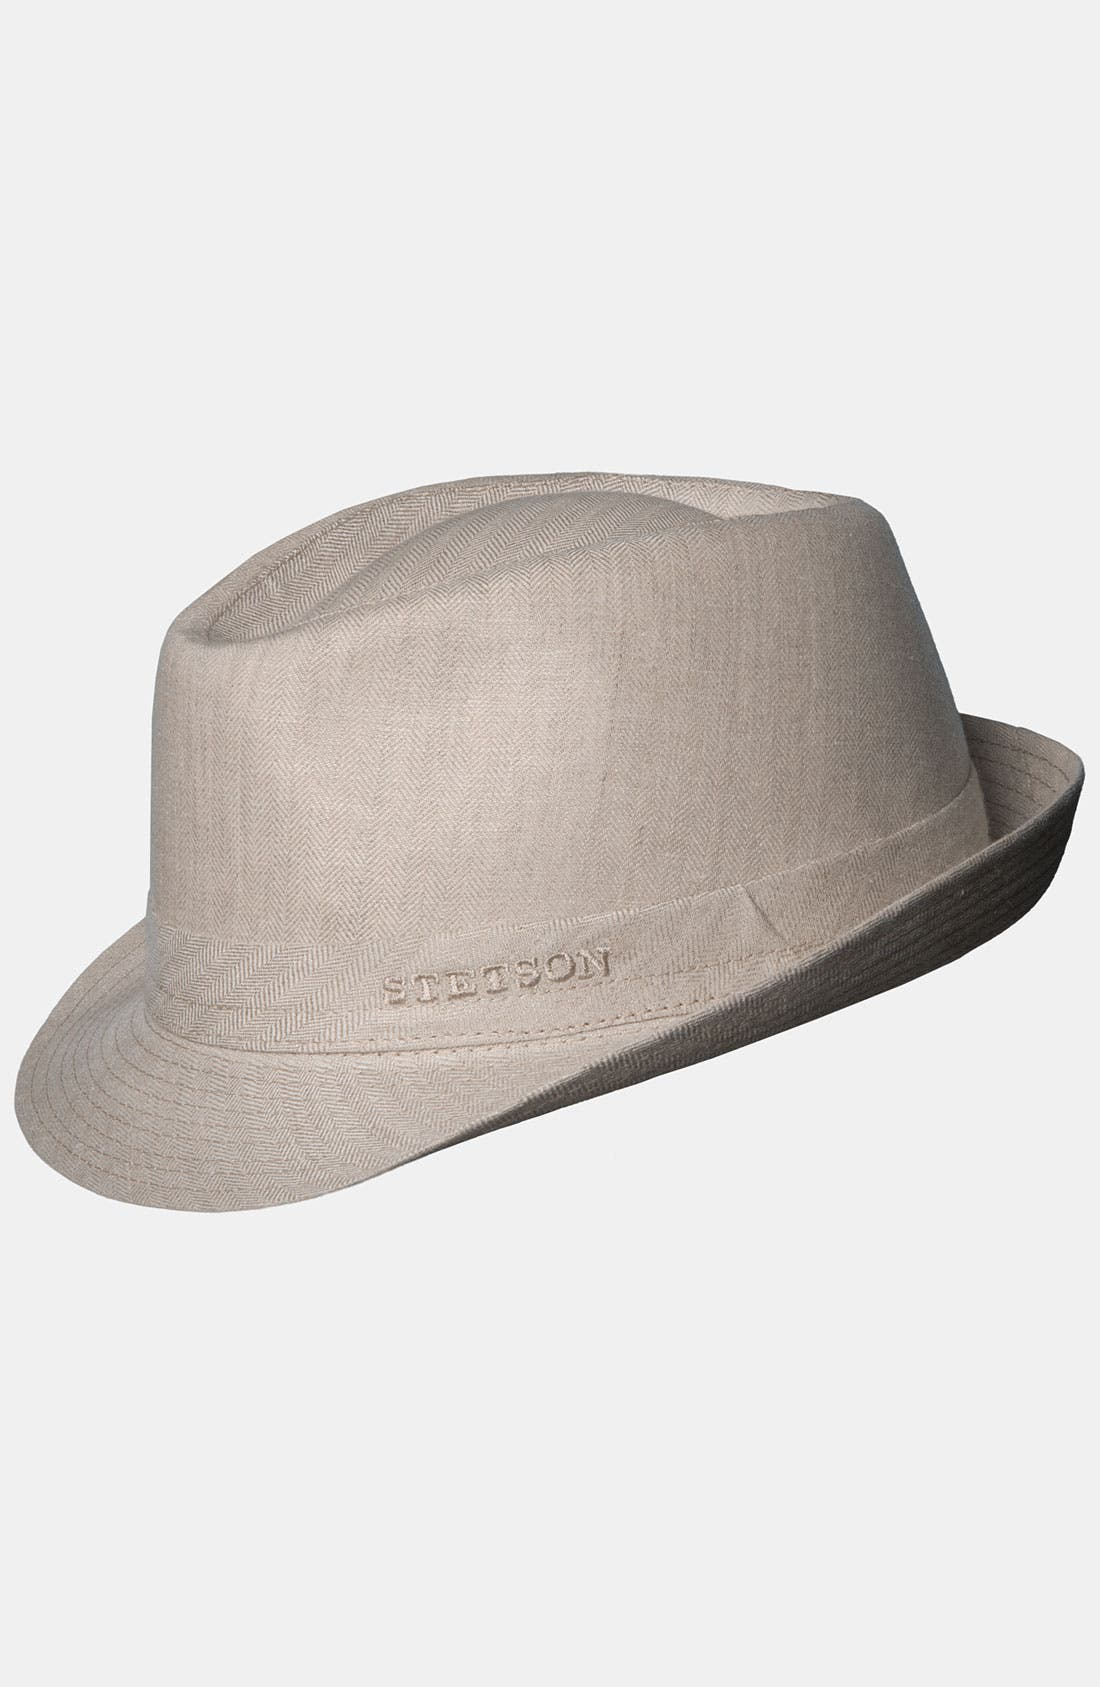 Alternate Image 1 Selected - Stetson Linen Fedora